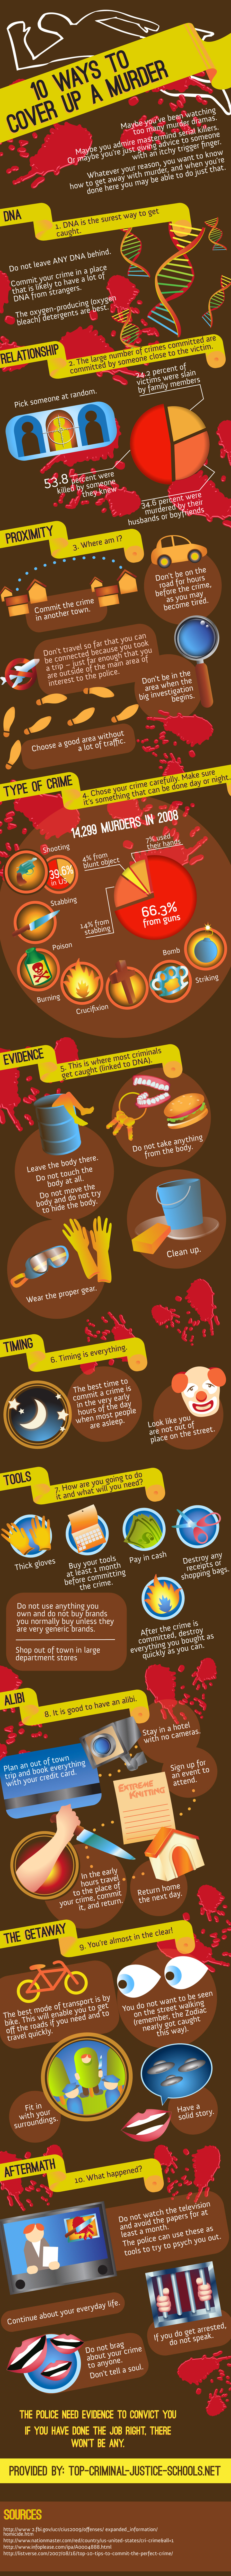 10 Ways To Cover Up A Murder